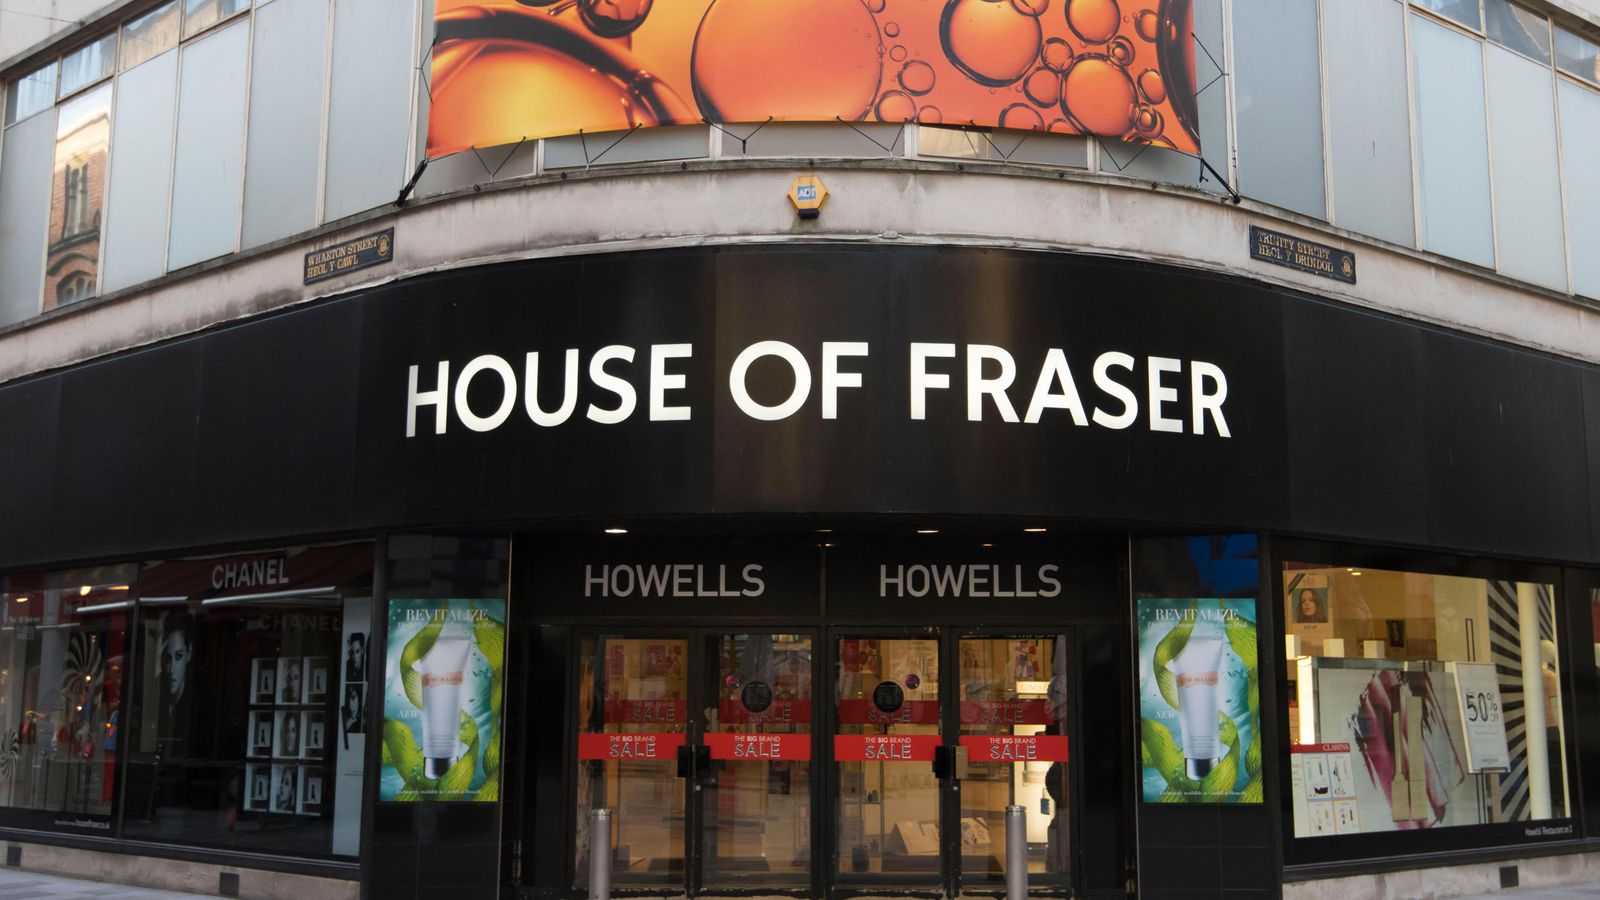 6,000 jobs to go as House of Fraser closures confirmed